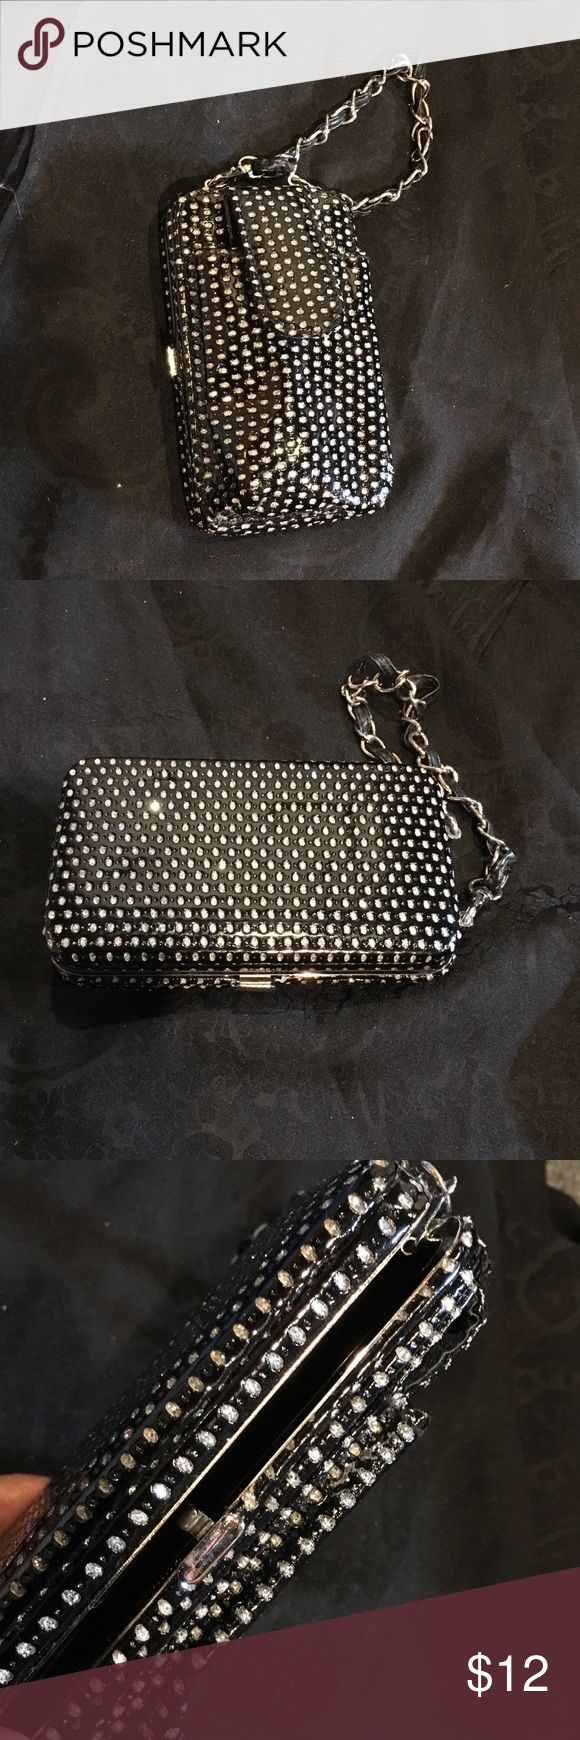 Jcp Credit Center Login - Maurice s clutch this clutch sparkles with cz diamonds the front holds cell phone and it